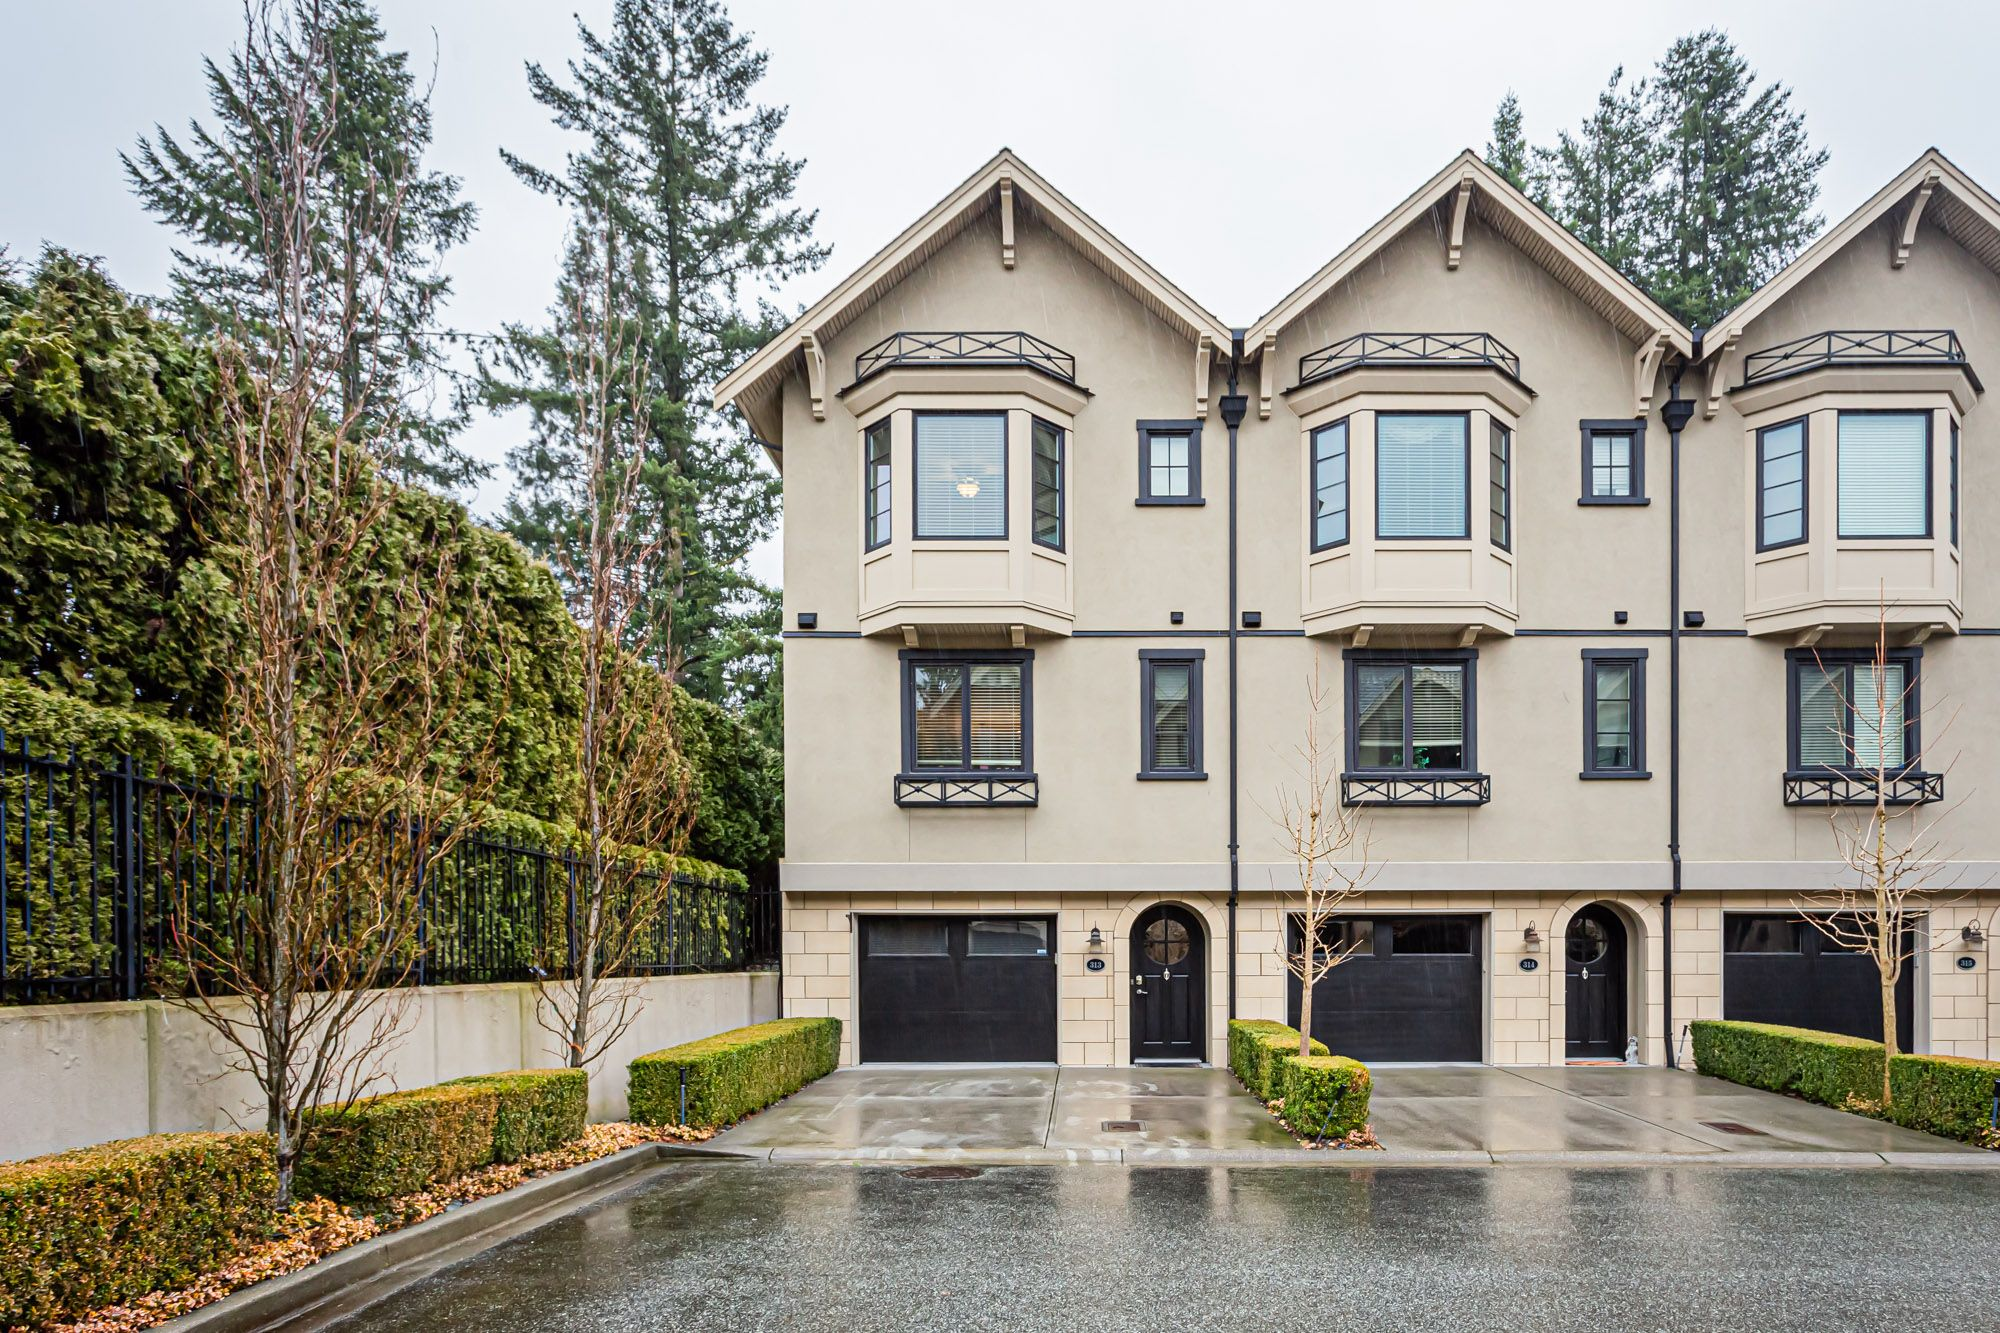 """Main Photo: 313 2580 LANGDON Street in Abbotsford: Abbotsford West Townhouse for sale in """"THE BROWNSTONES ON THE PARK"""" : MLS®# R2440240"""